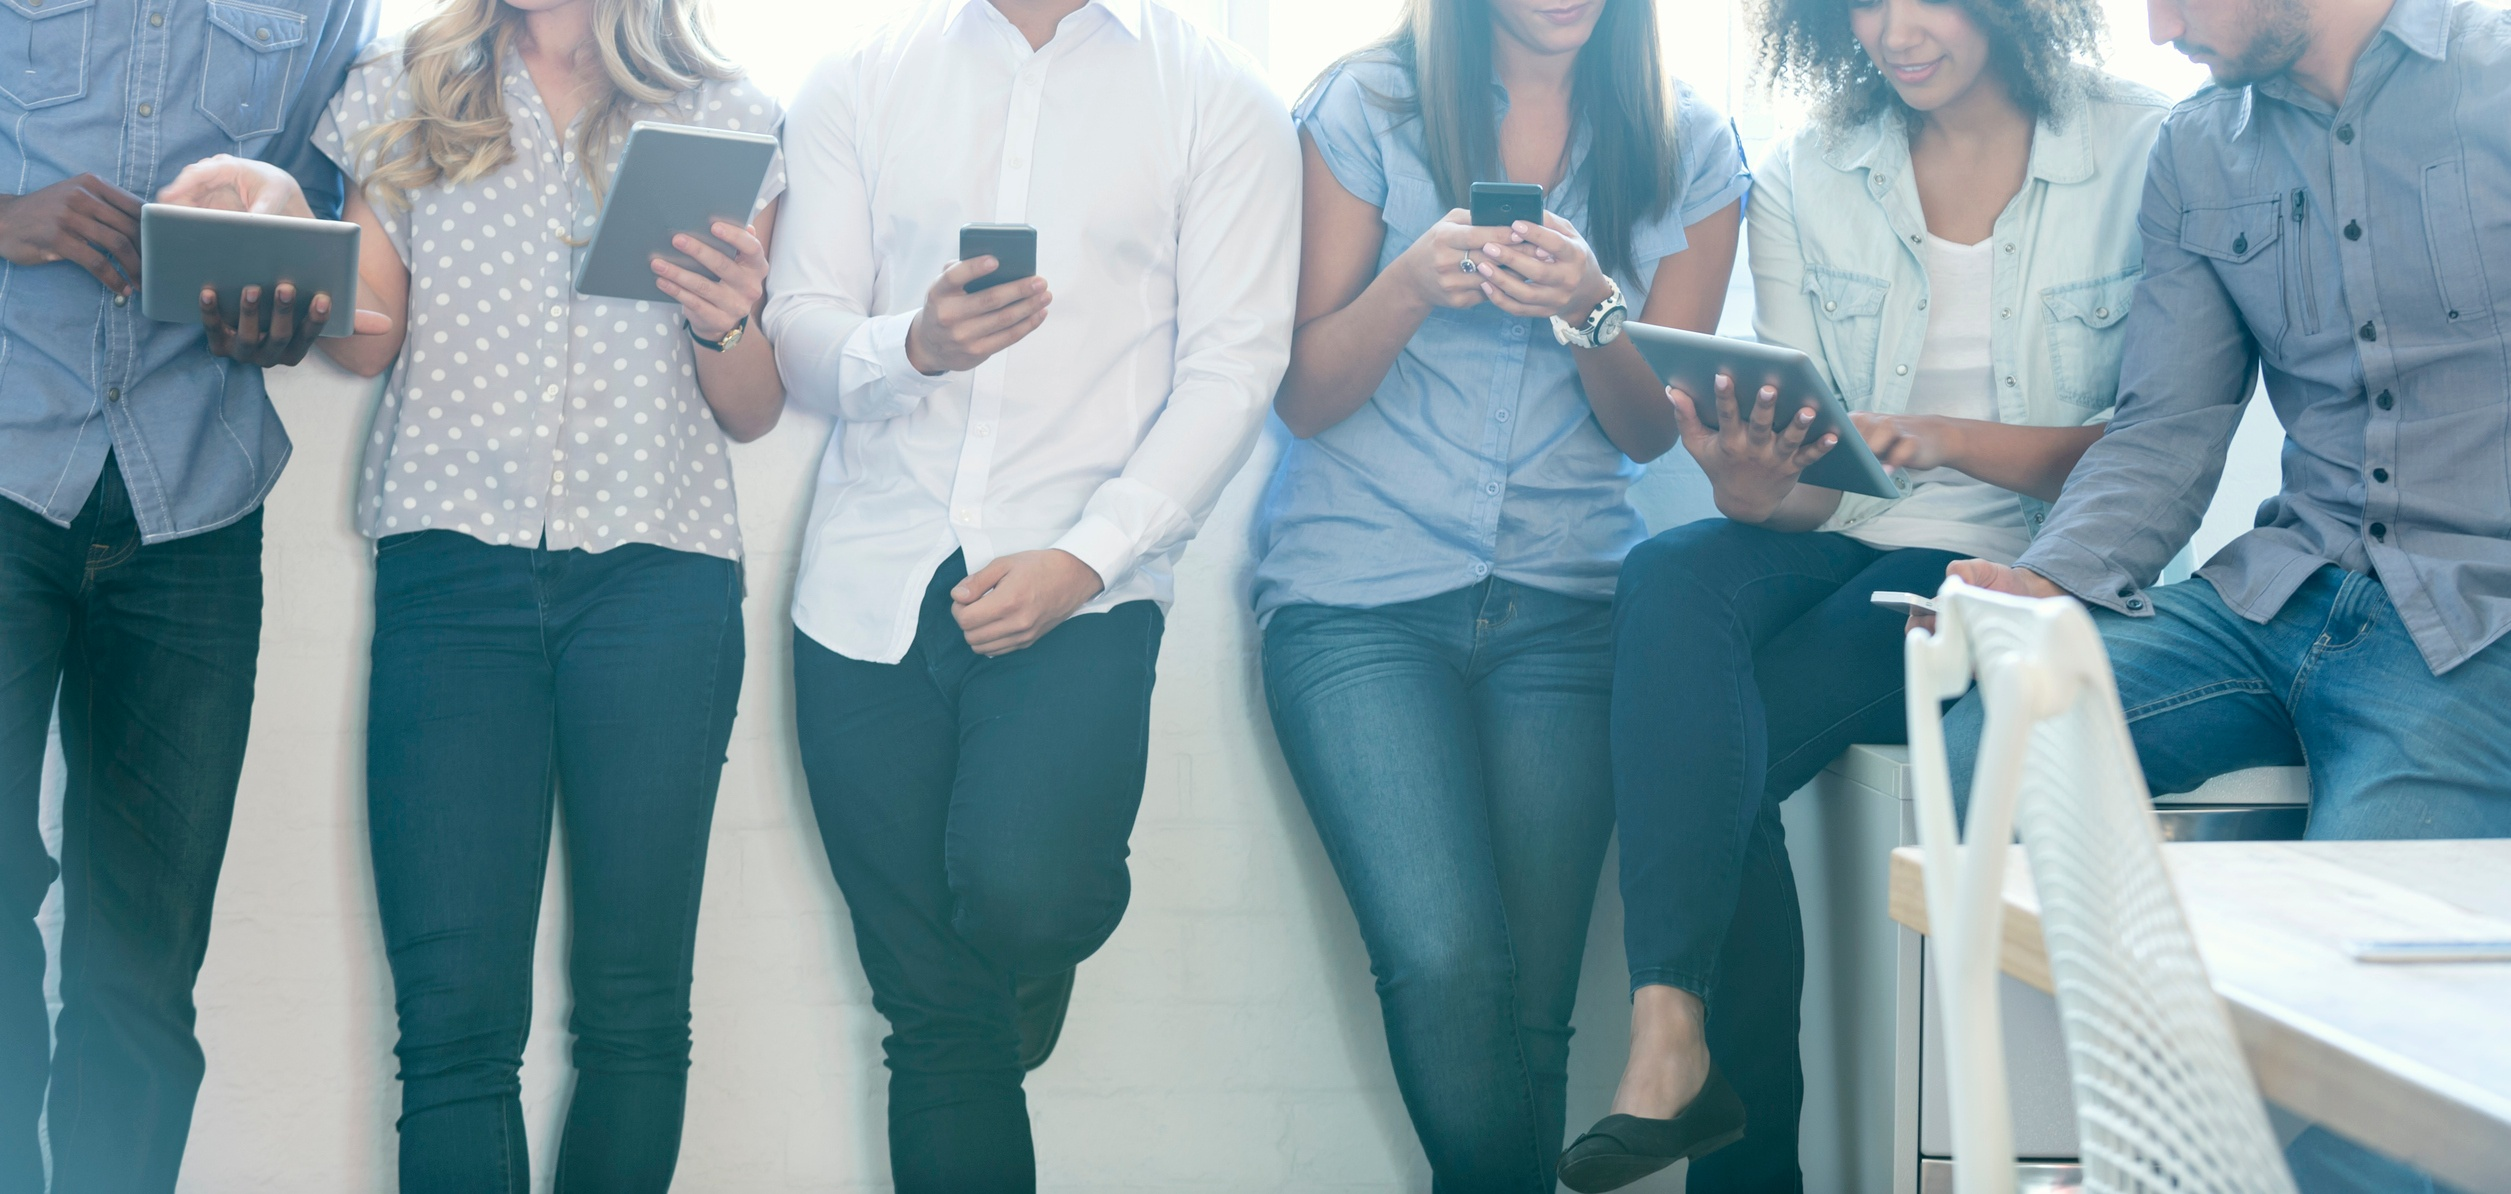 People standing with mobile devices. JConnelly blog- It's Not Easy to Give Up Social Media